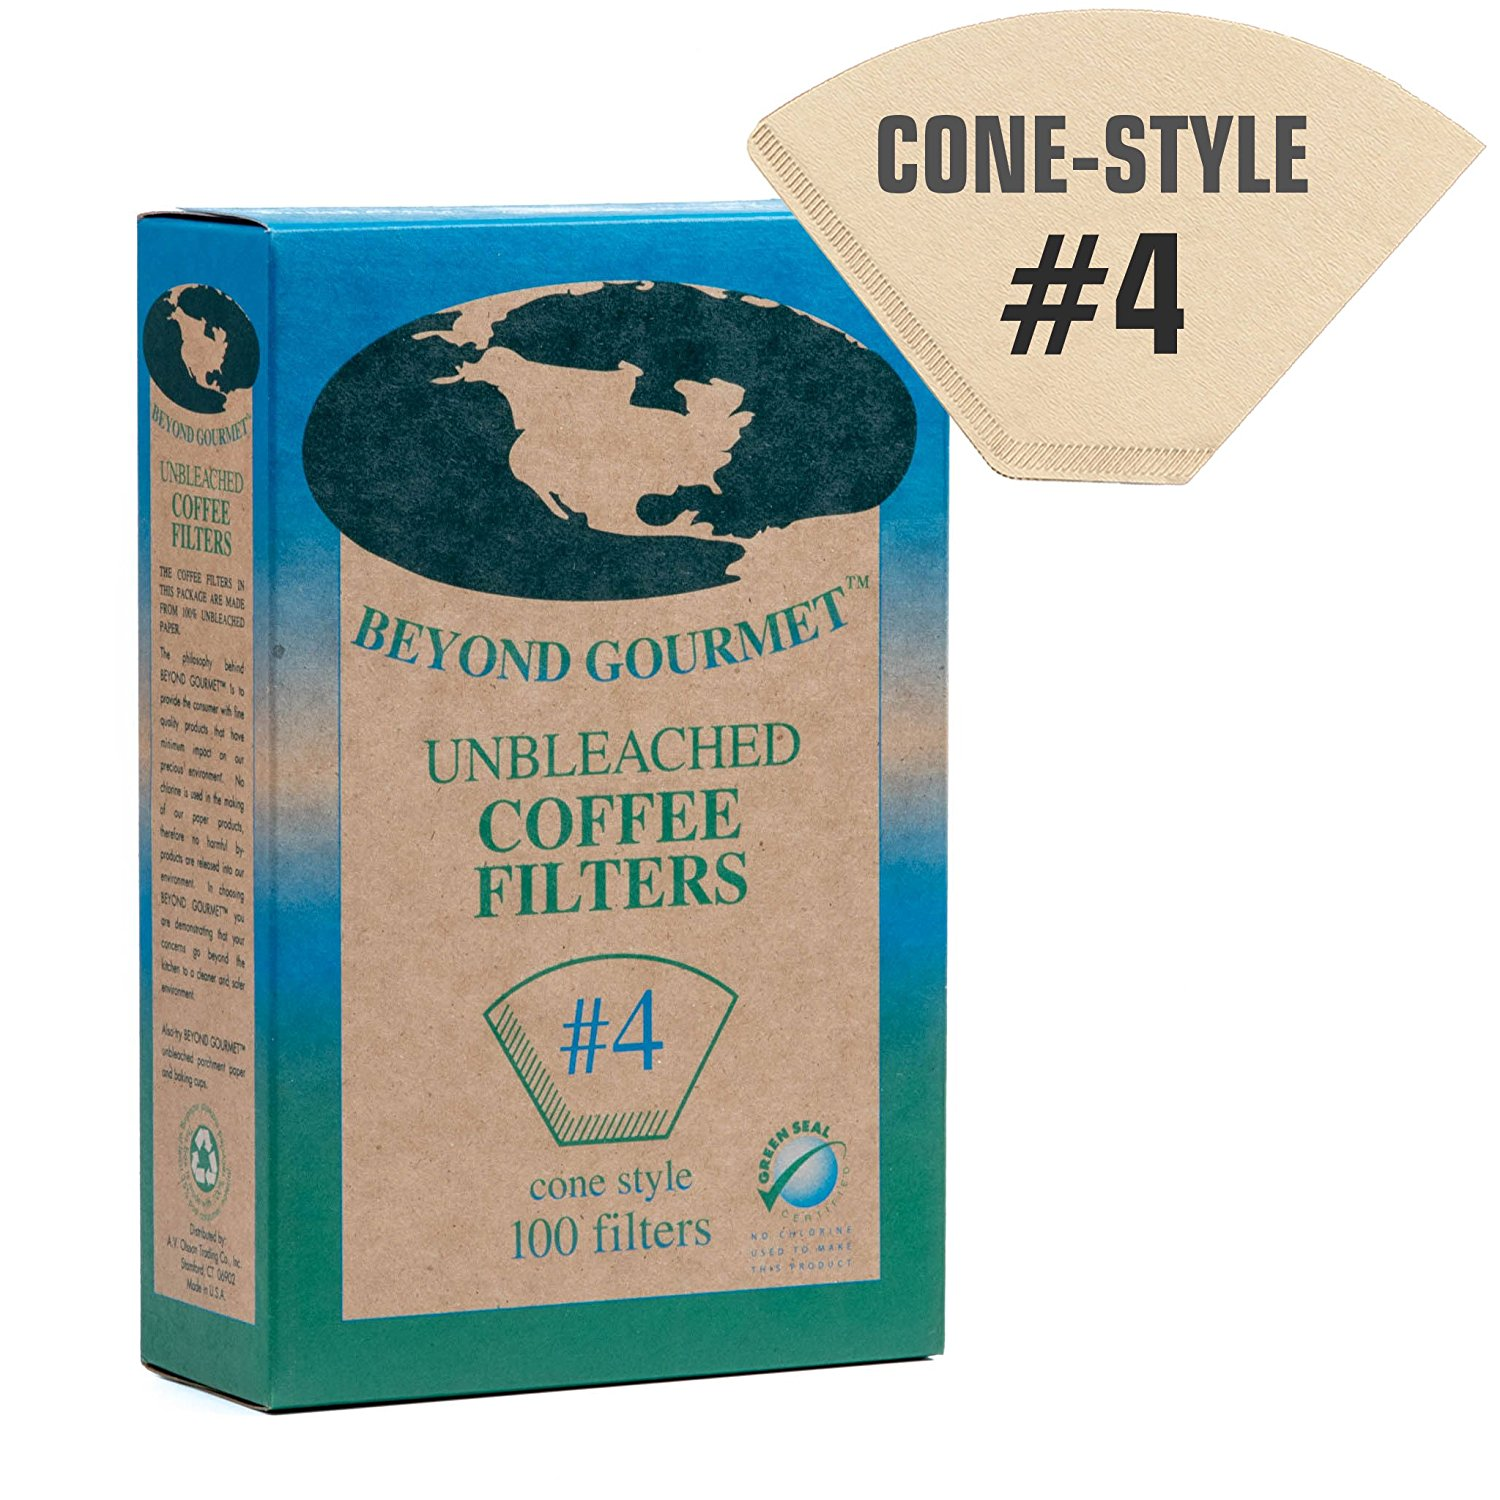 #4 Cone Paper Coffee Filters - Brown, Unbleached, Chlorine-free (#4, 100 Filters)